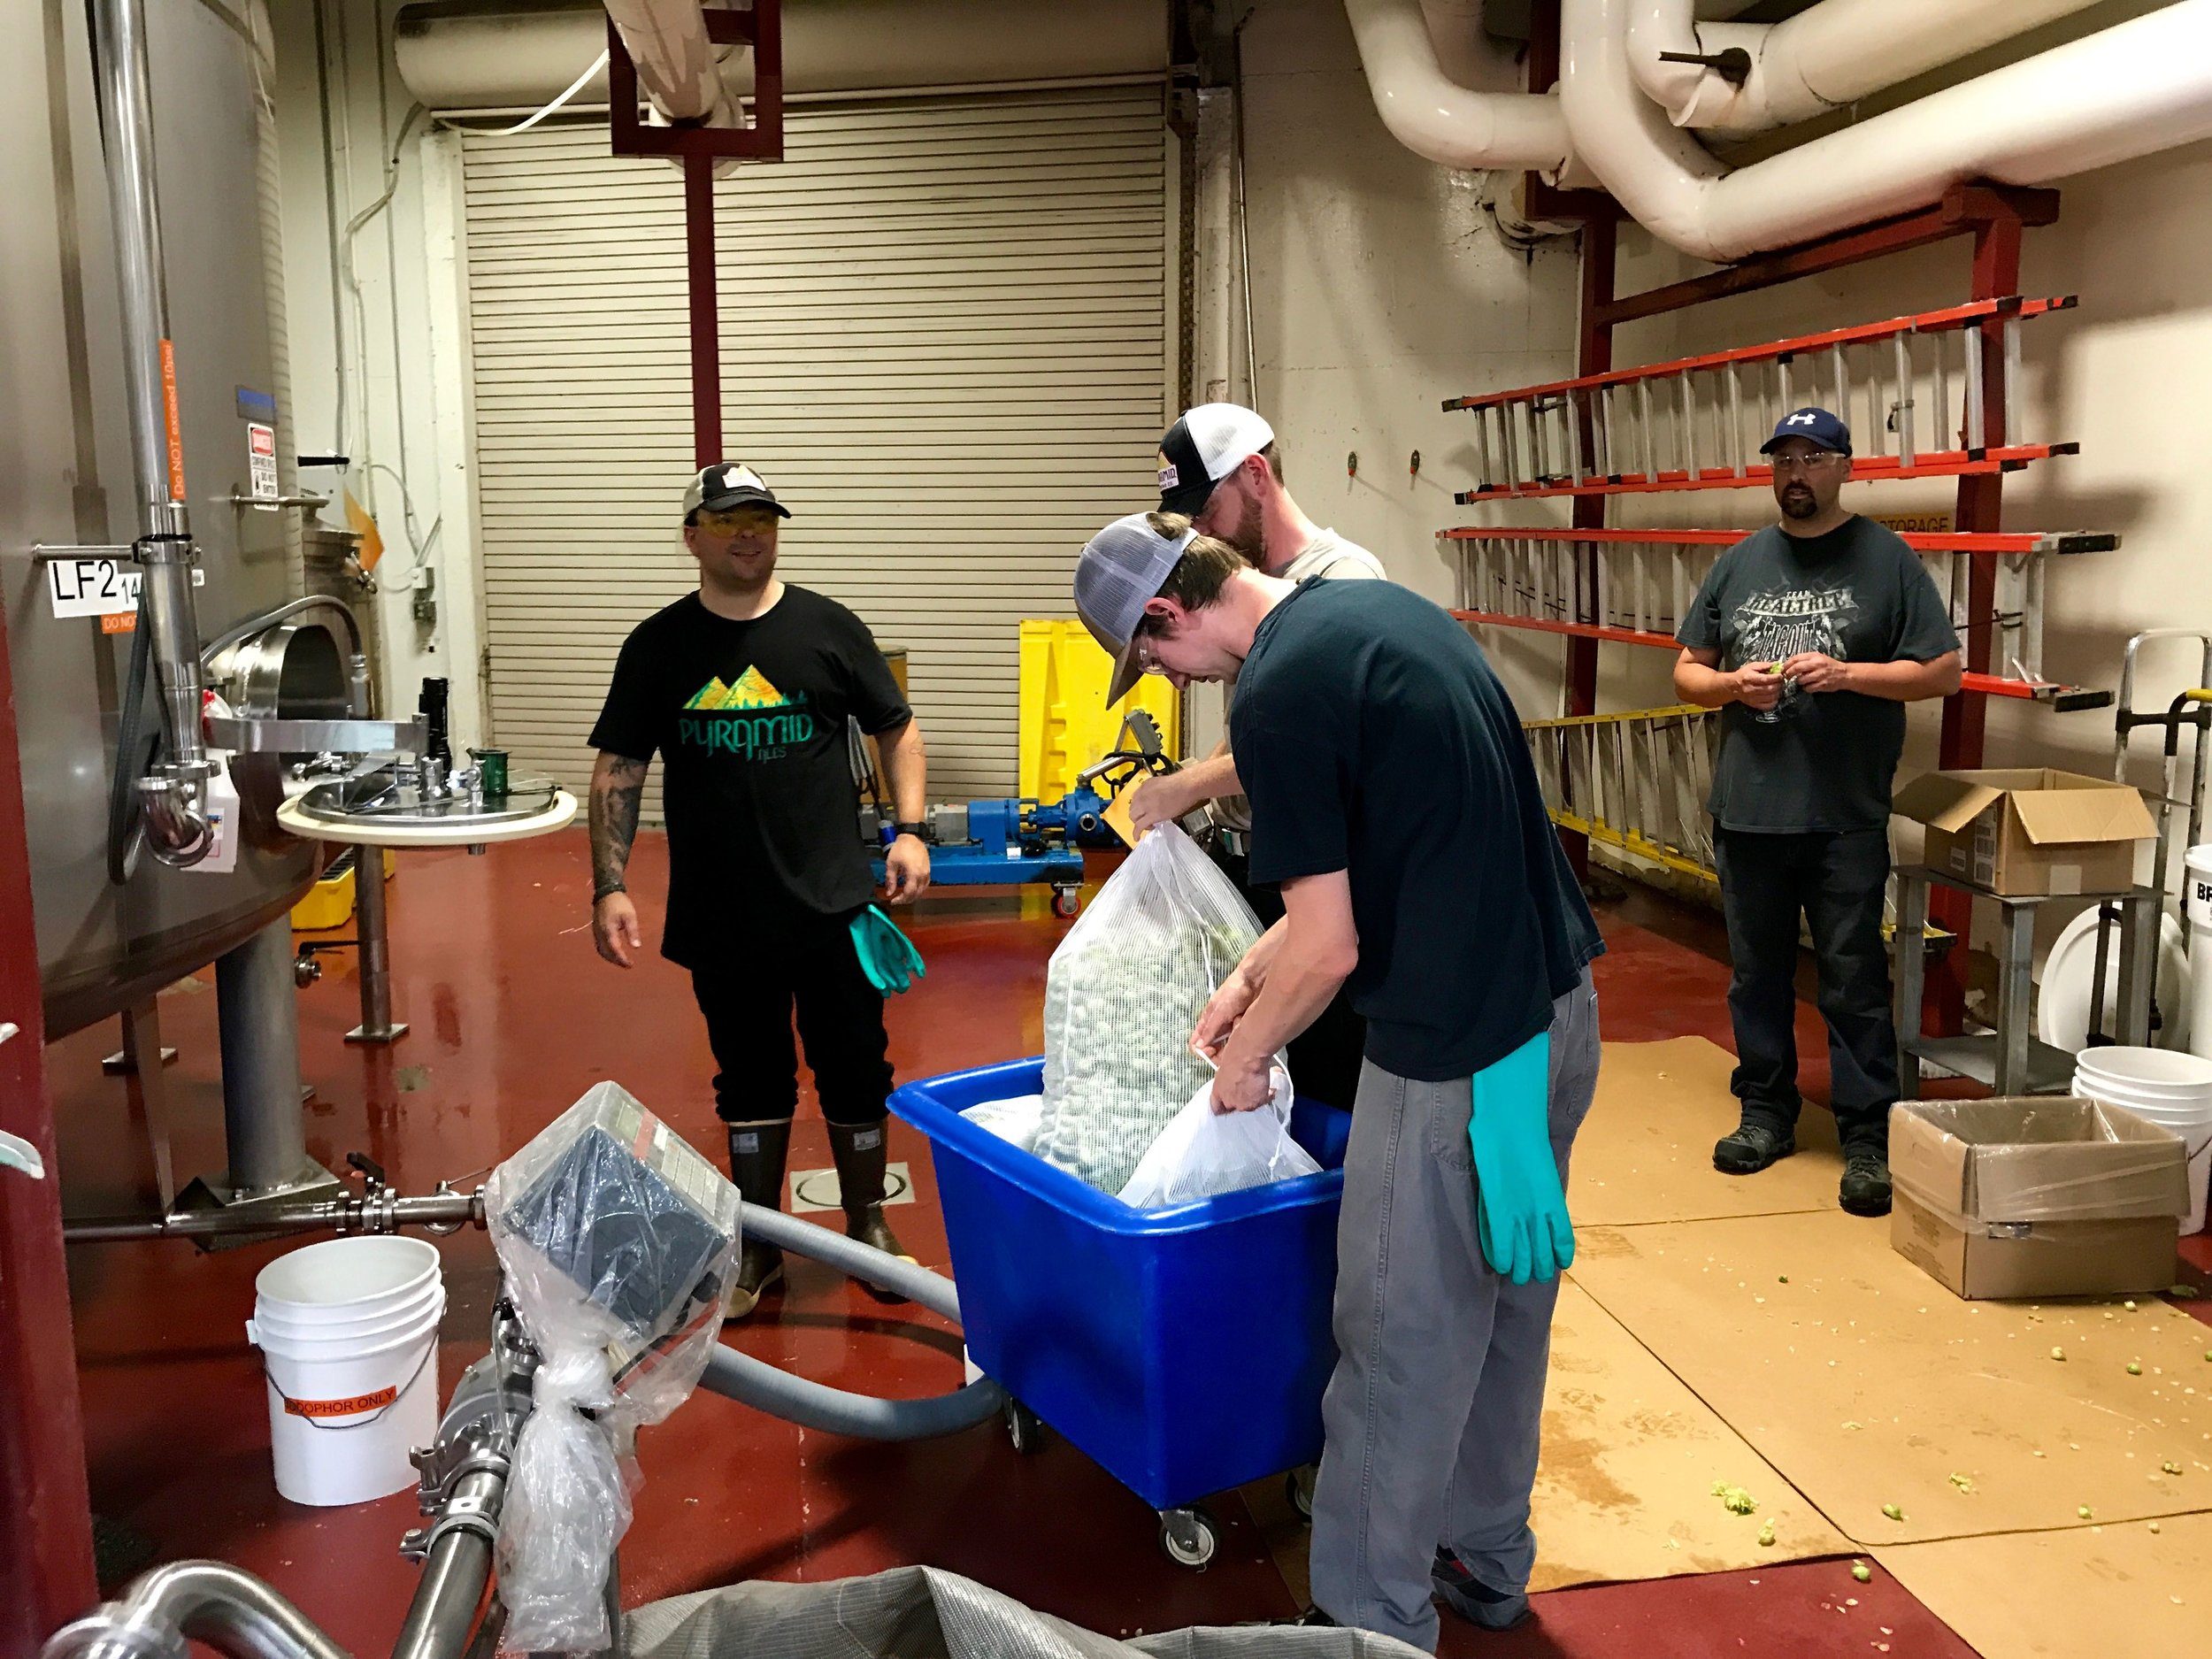 We arrive back to Pyramid Brewing in Portland. Brewers add 200 pounds of fresh centential hops to the kettle.